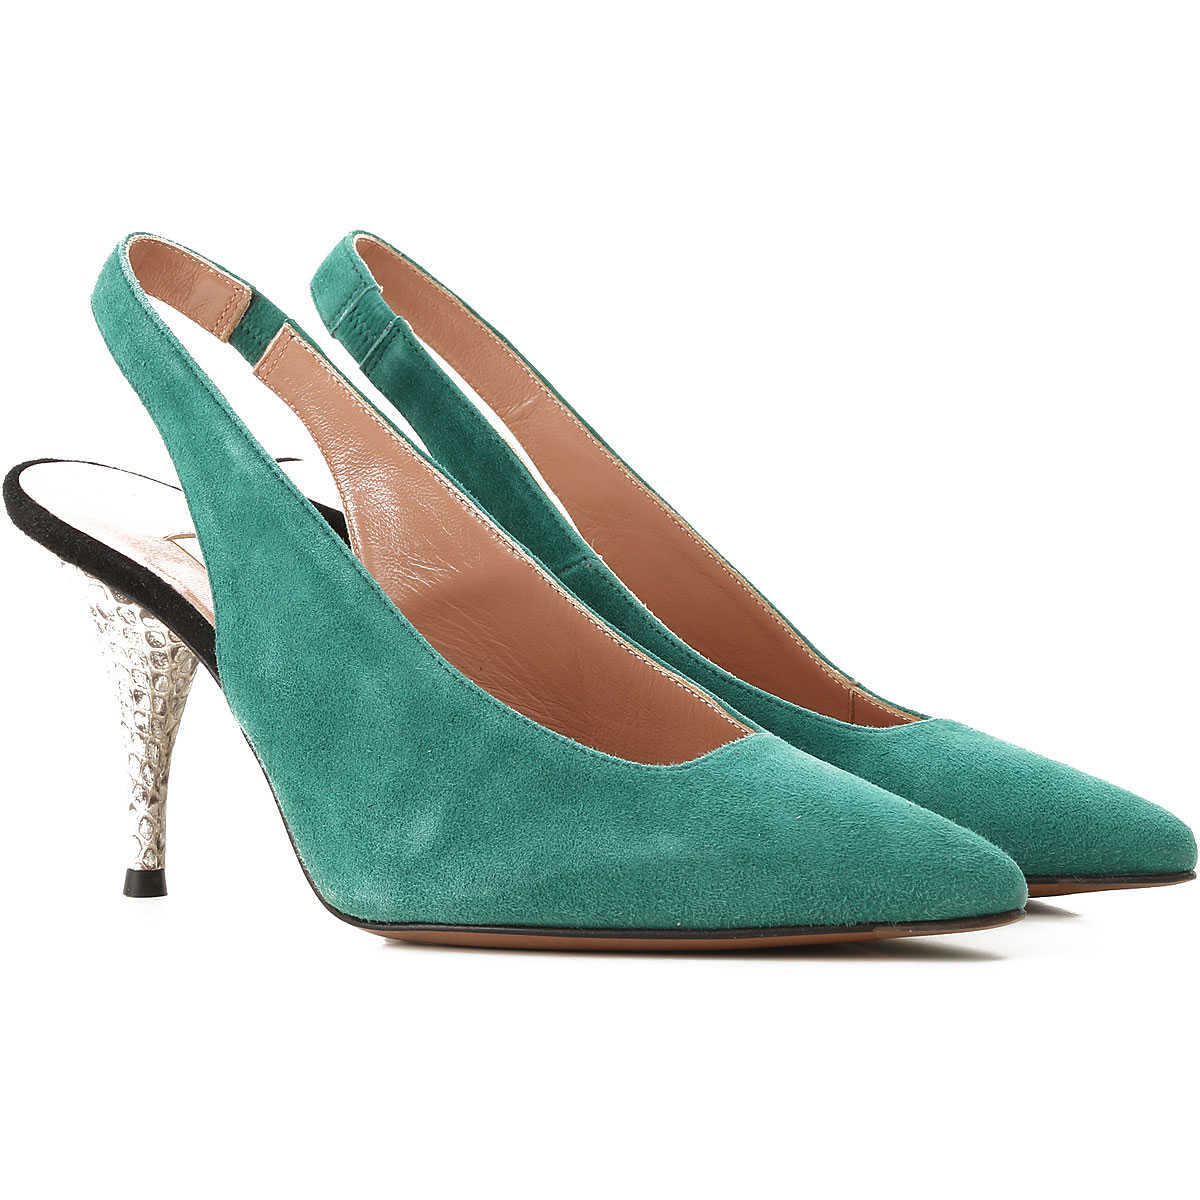 Lautre Chose Pumps & High Heels for Women On Sale in Outlet Green DK - GOOFASH - Womens HIGH HEELS